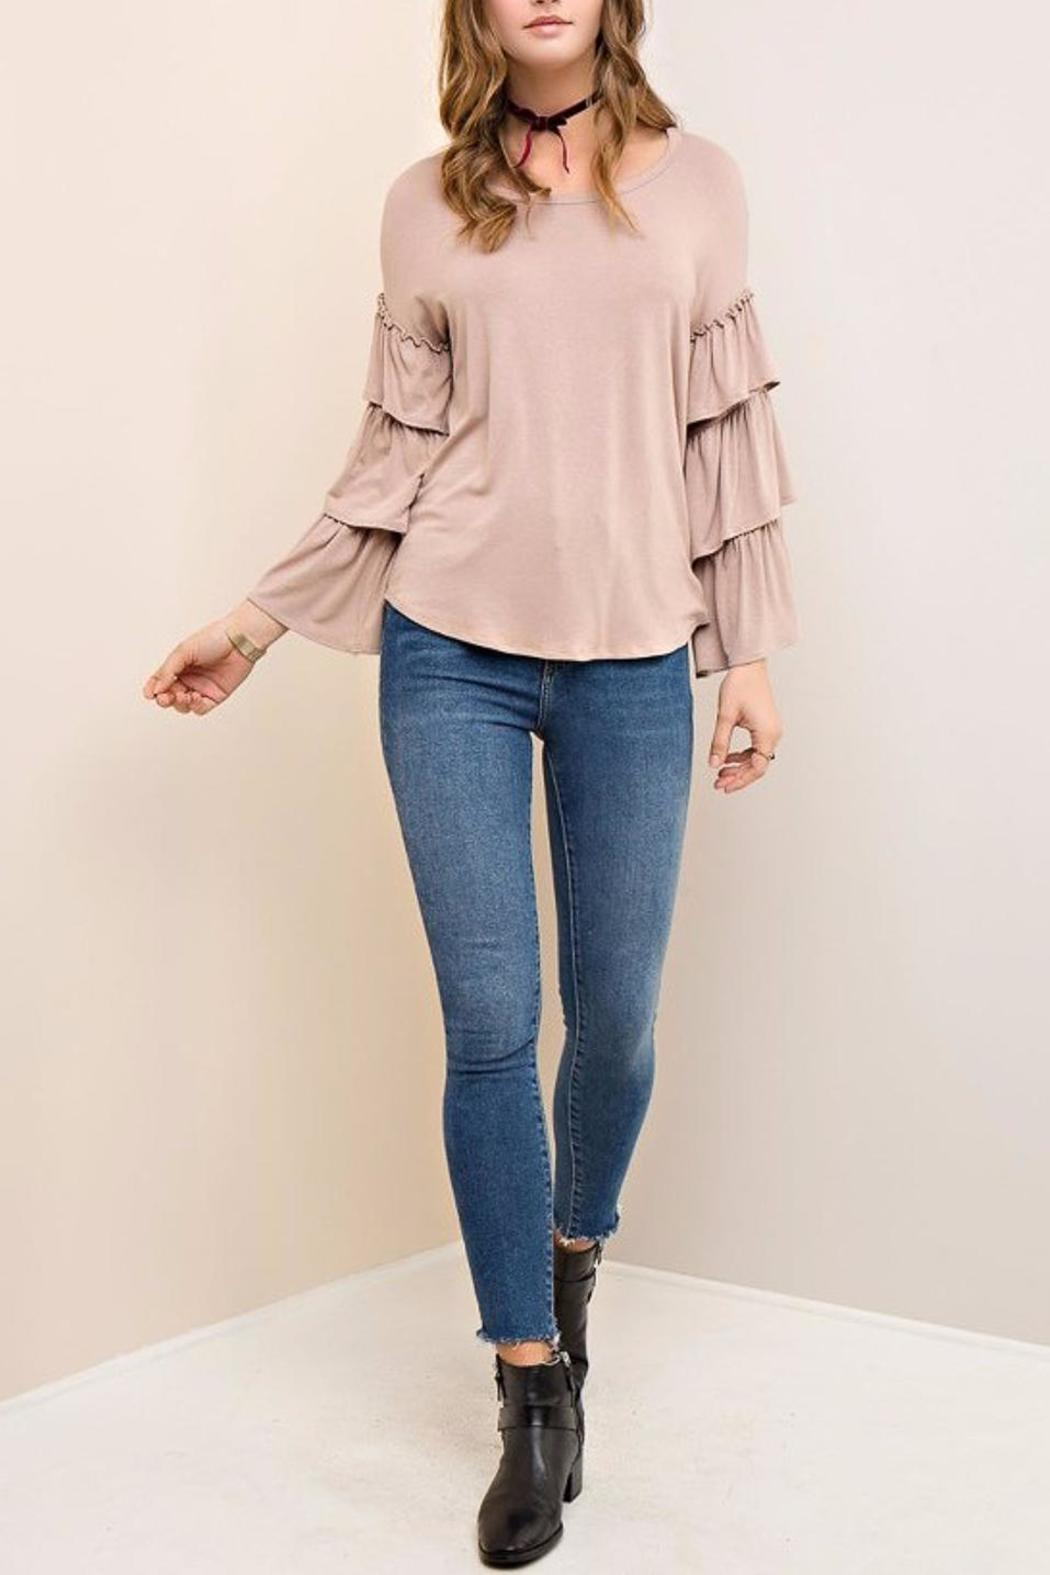 People Outfitter Mystic Ruffle Sleeves - Front Full Image